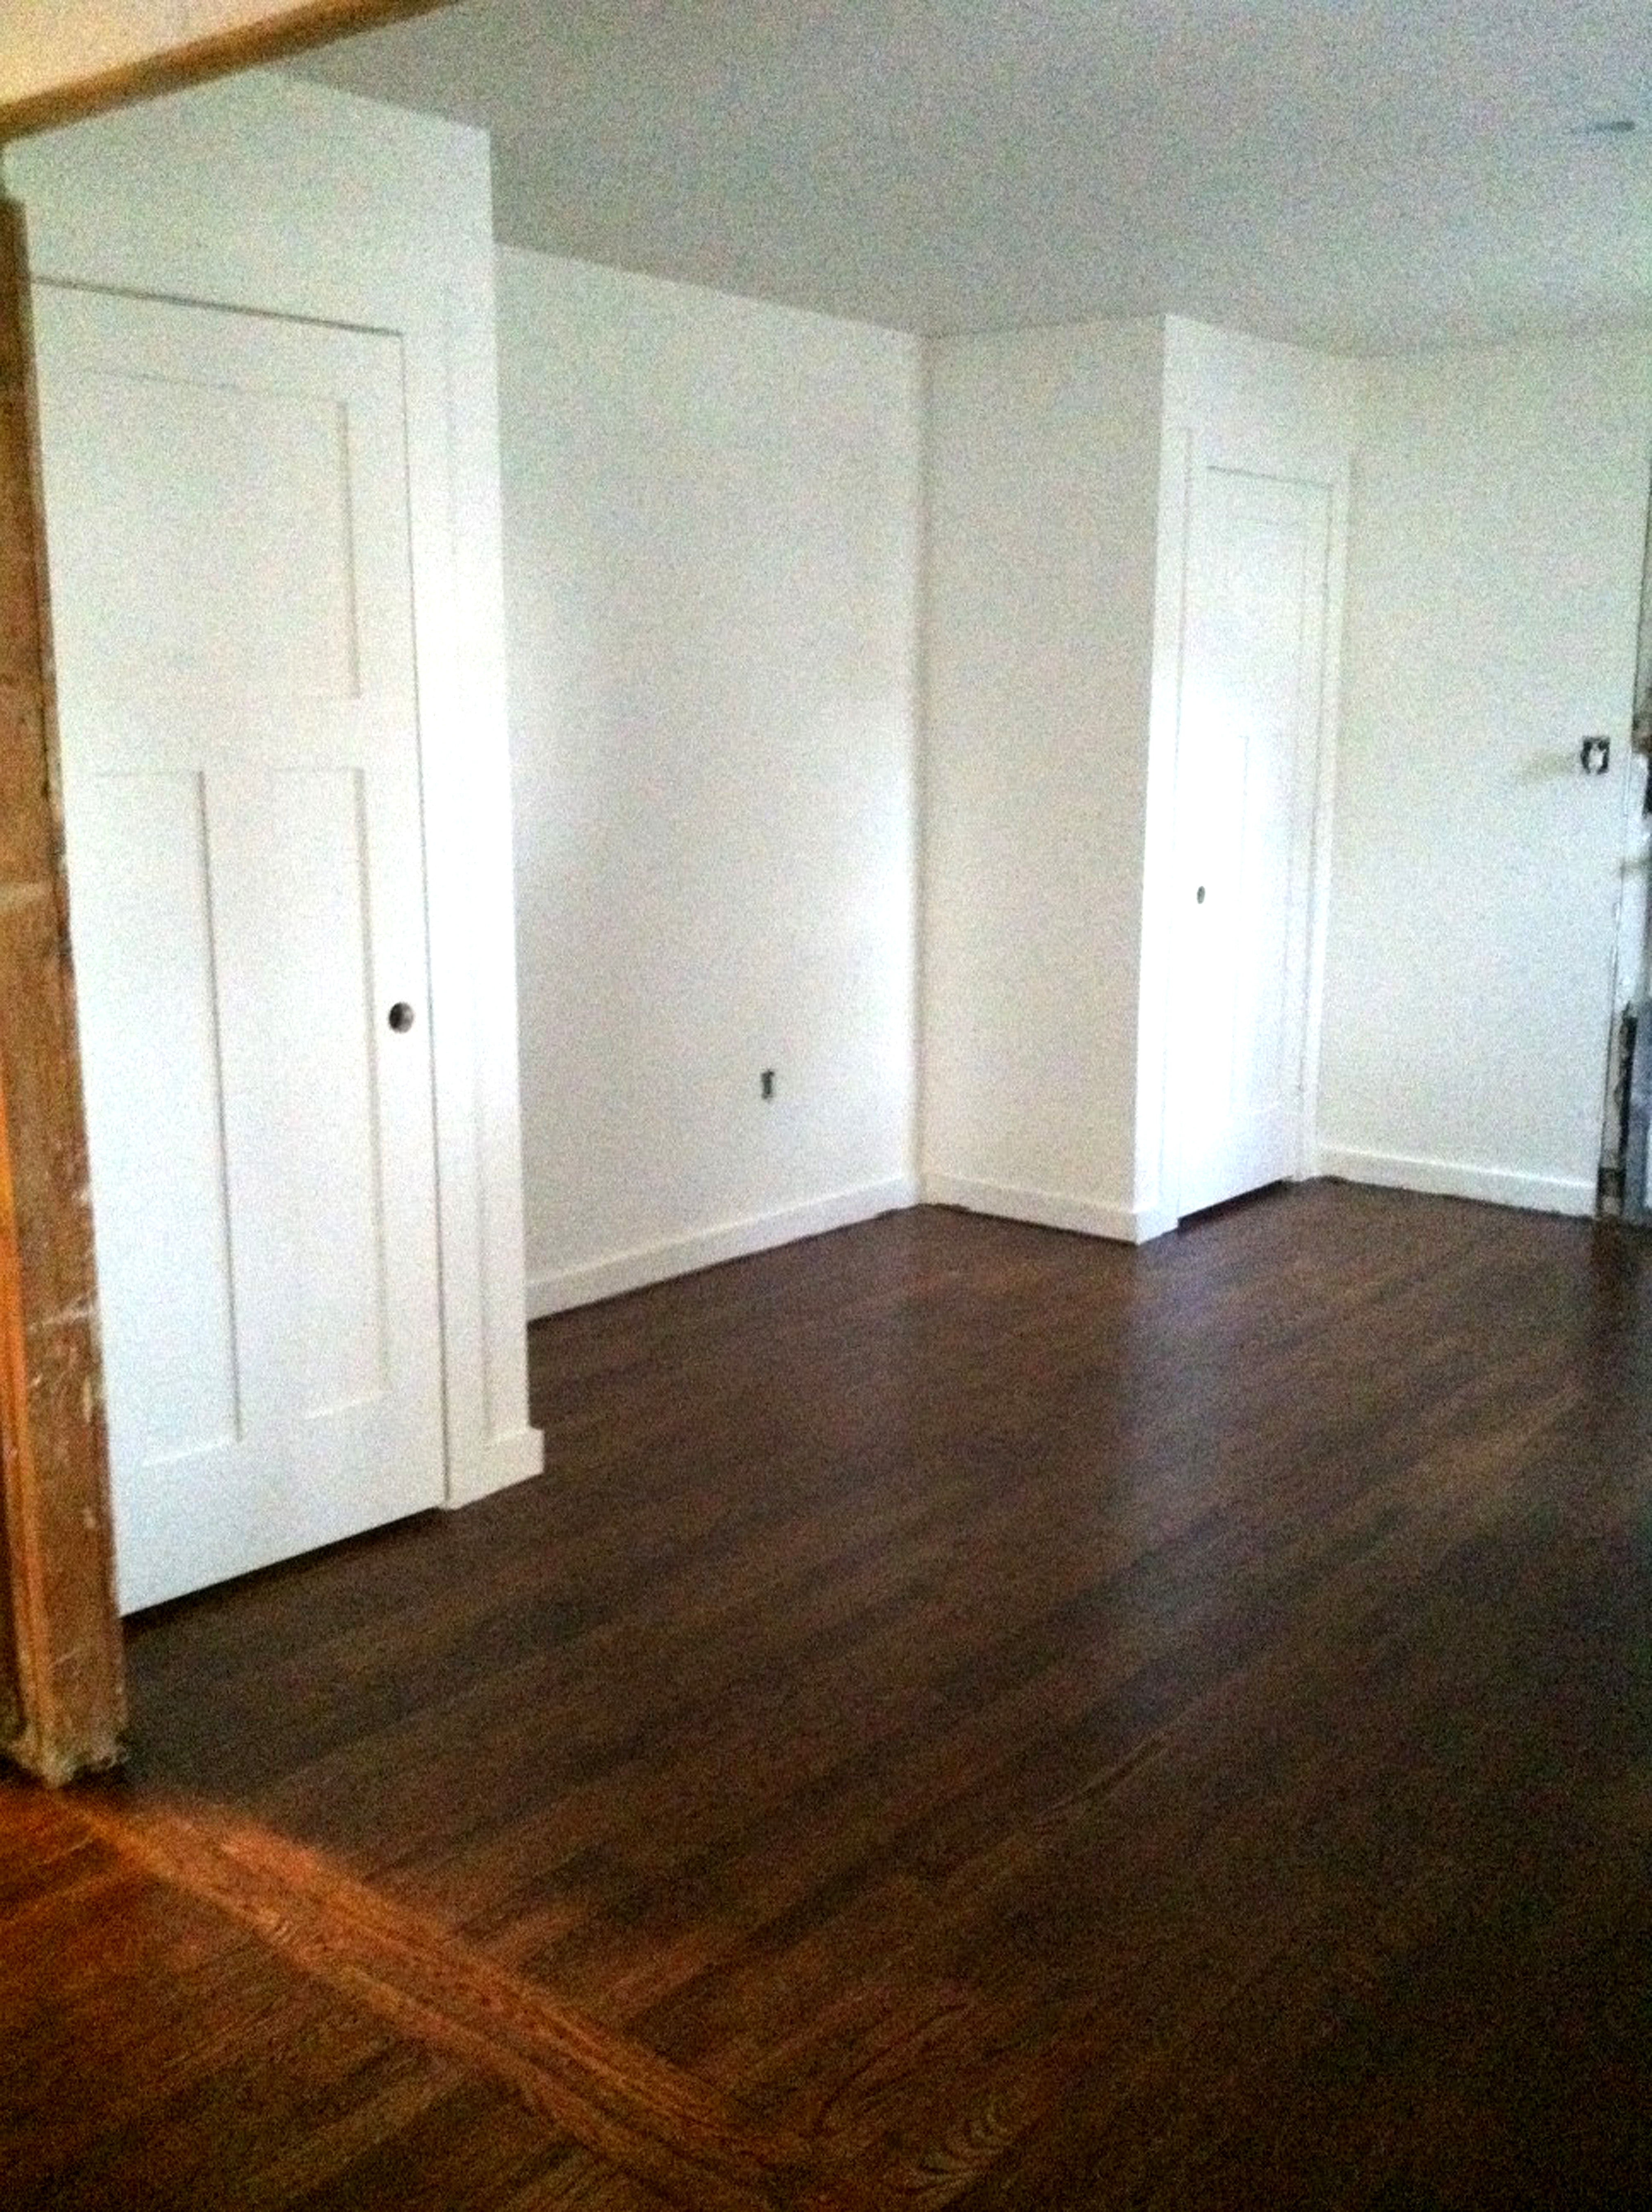 Staining Wood Floors Darker